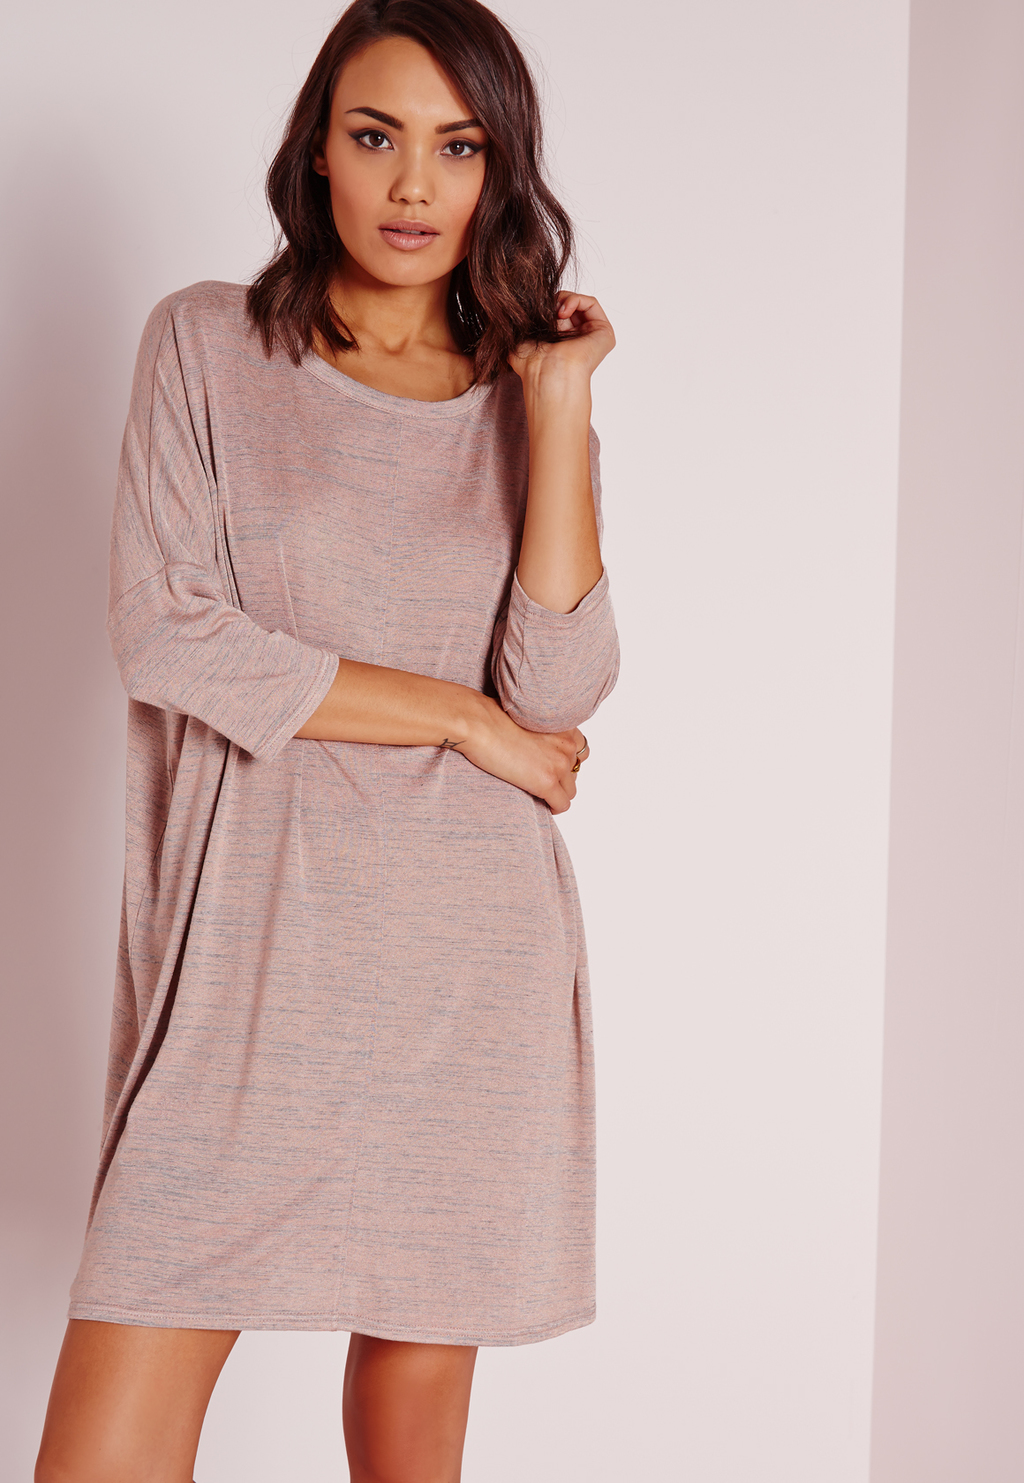 Oversized Slouchy T Shirt Dress Nude Marl, Beige - style: shift; length: mid thigh; neckline: round neck; pattern: plain; predominant colour: nude; occasions: casual, creative work; fit: soft a-line; fibres: polyester/polyamide - 100%; sleeve length: 3/4 length; sleeve style: standard; pattern type: fabric; texture group: jersey - stretchy/drapey; season: s/s 2016; wardrobe: basic